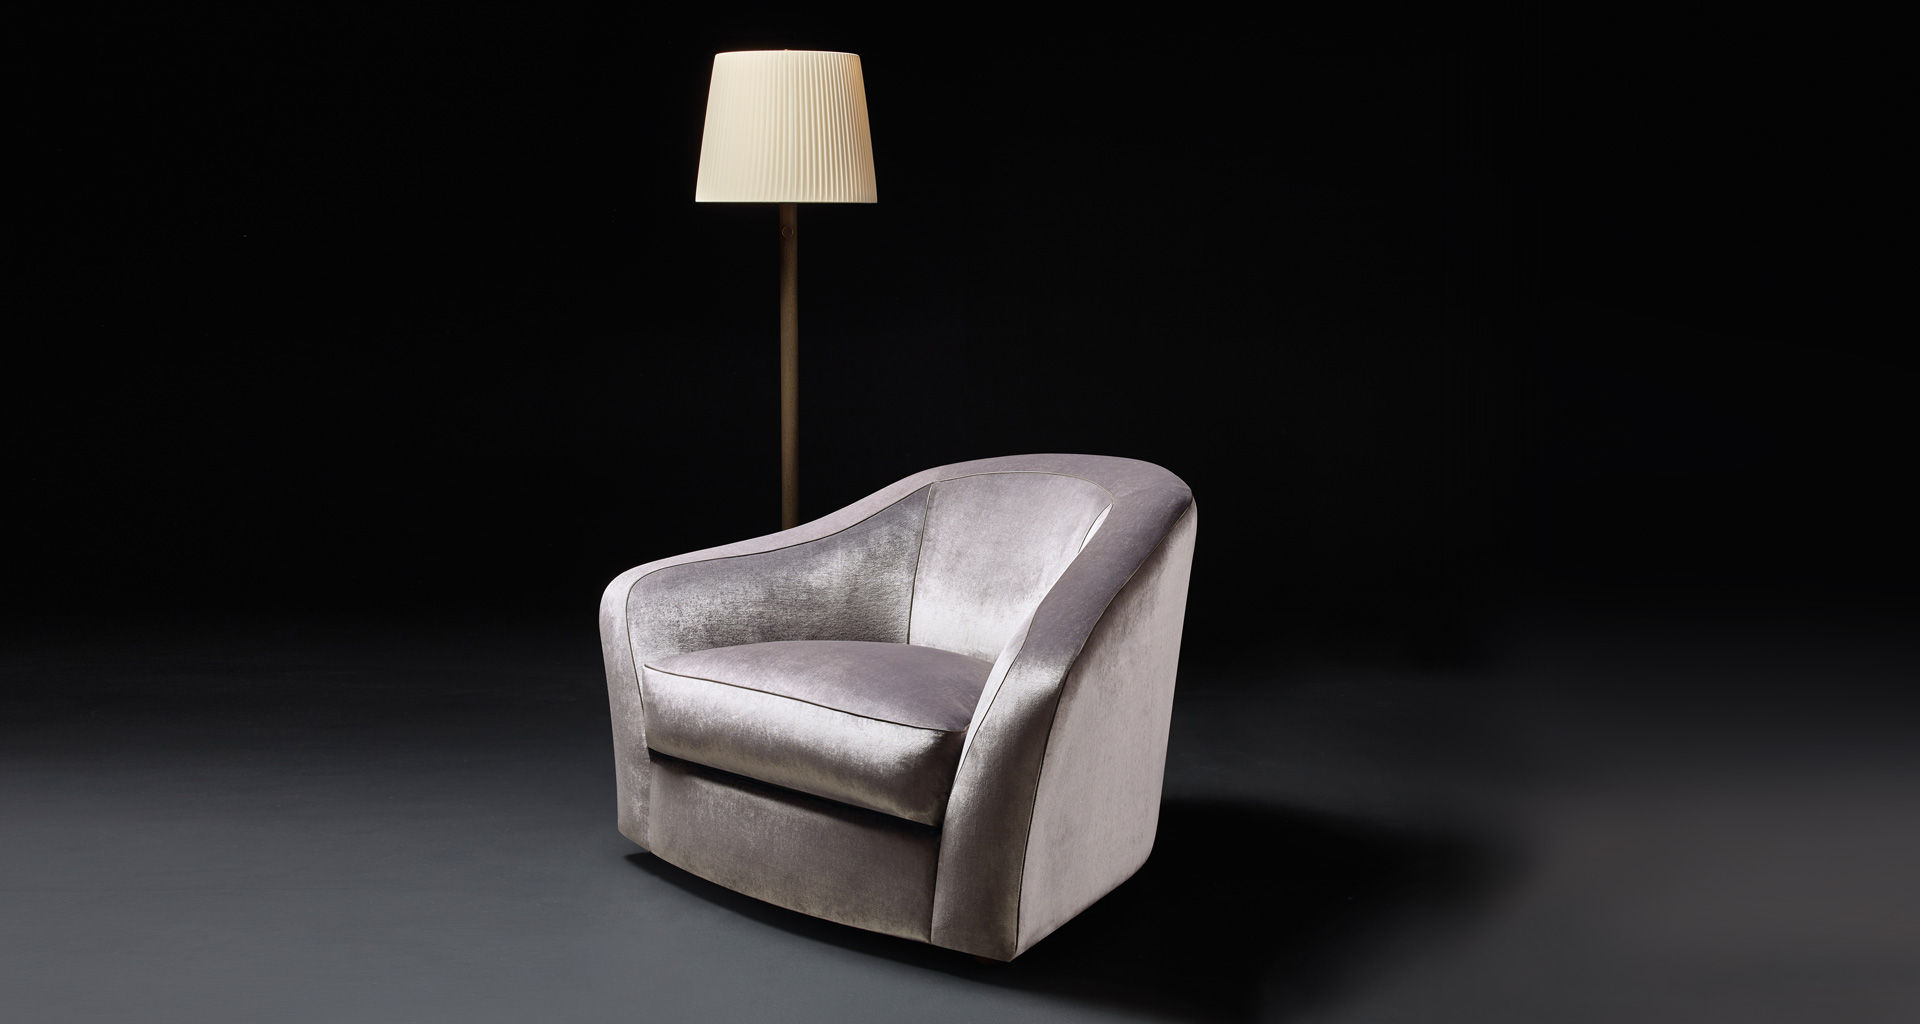 Fiore di Loto is an armchair for two covered in fabric or leather, from Promemoria's catalogue | Promemoria